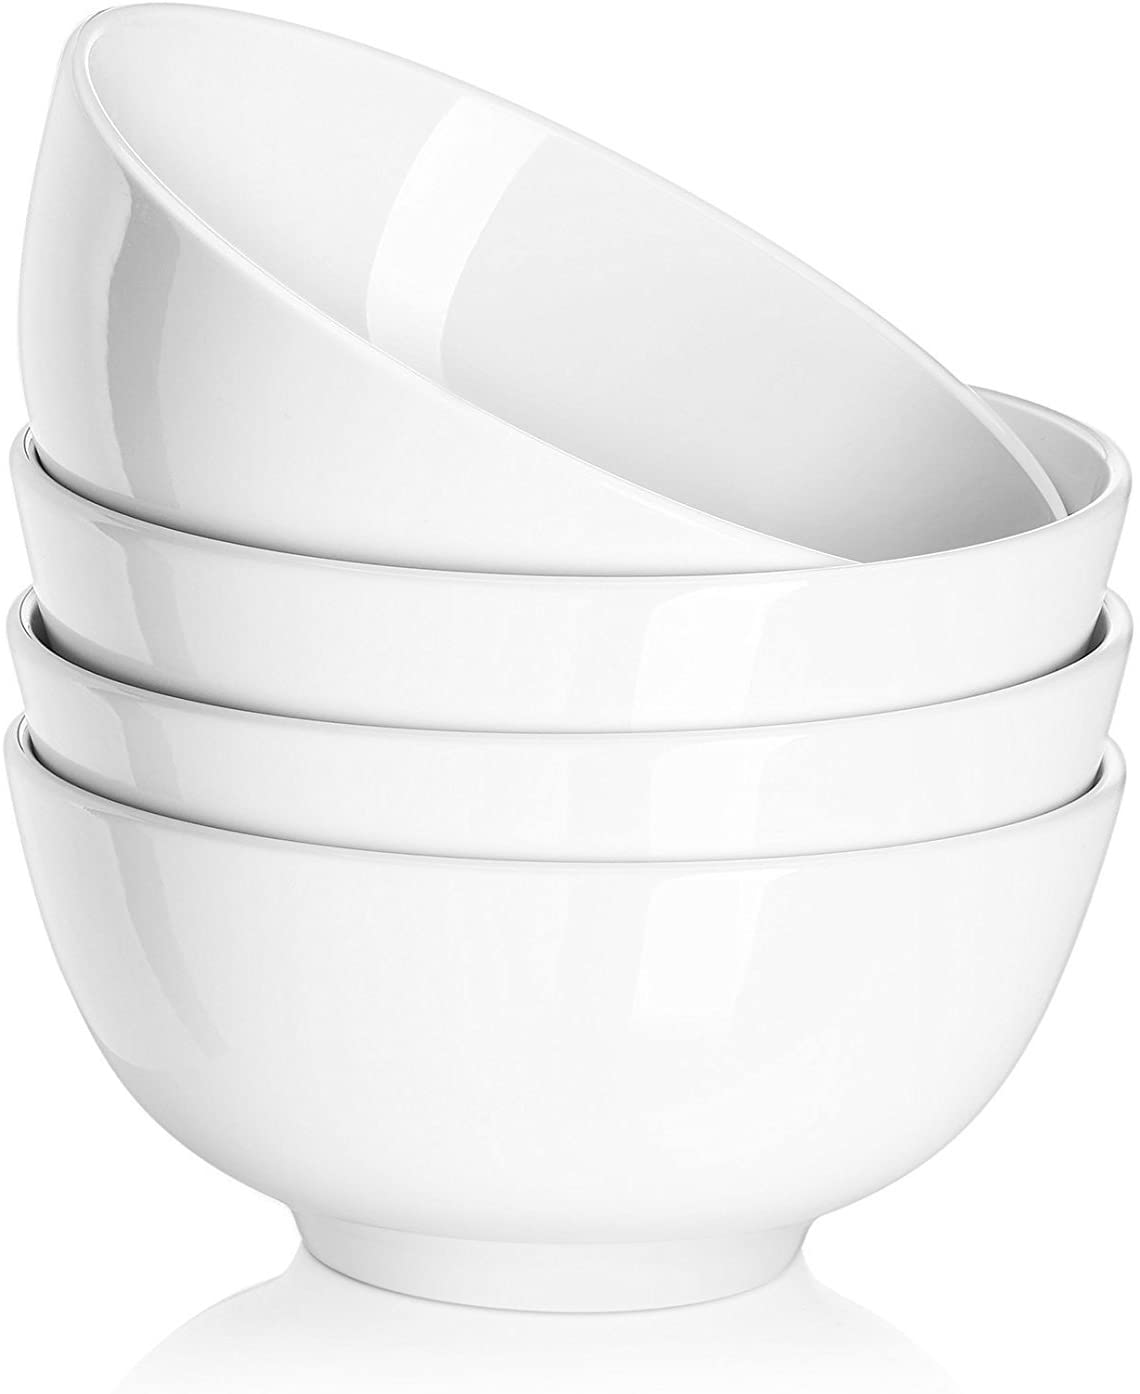 DOWAN Cereal Bowl